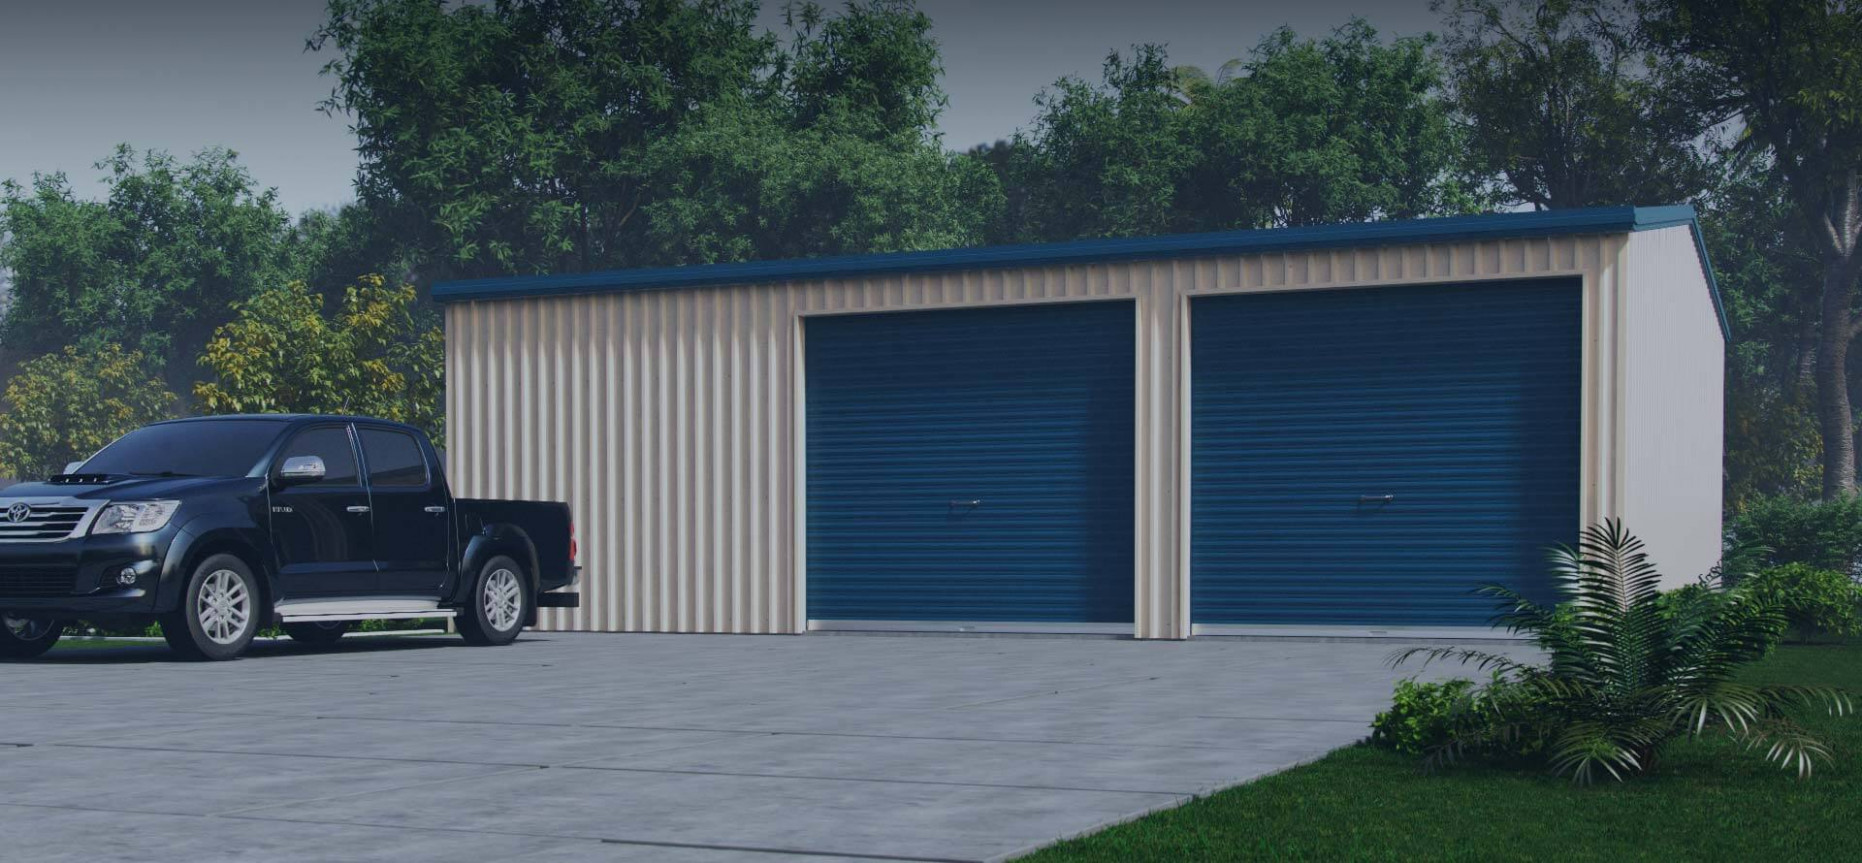 Sheds And Garages Guaranteed By Titan Garages & Sheds Carports Garages Perth